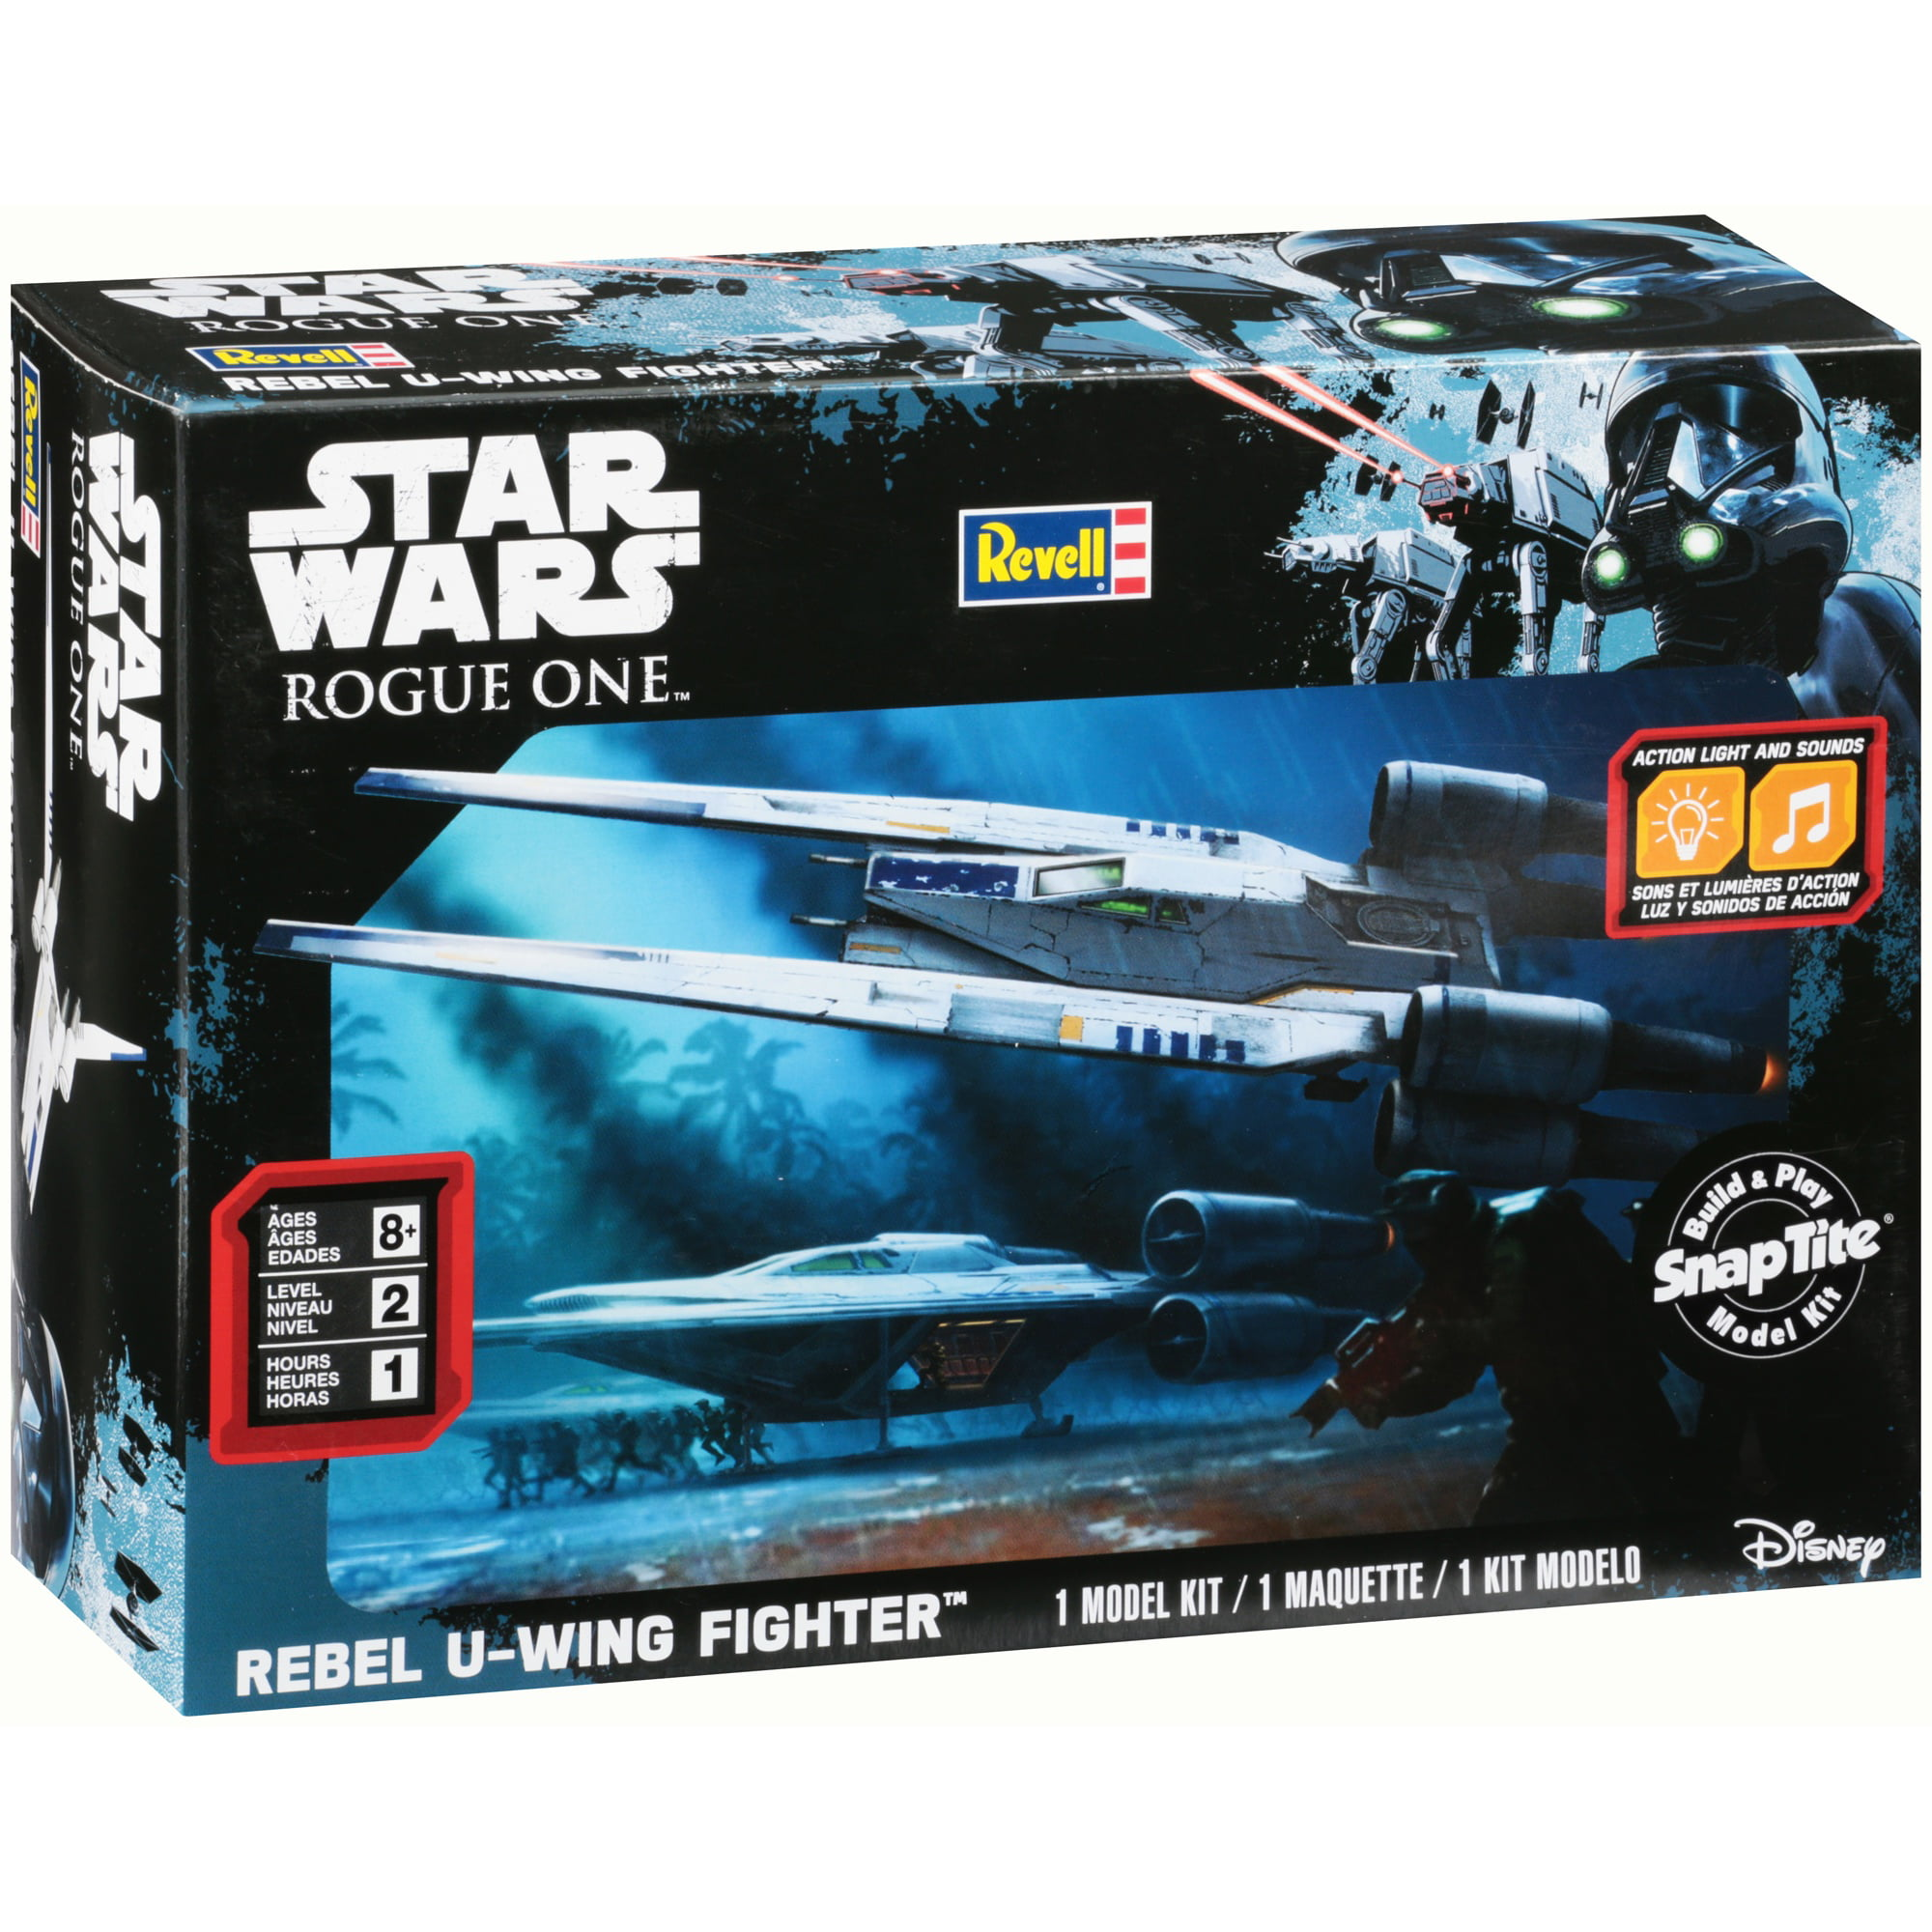 Revell Star Wars Rogue One Rebel U-Wing Fighter Model Kit 35 pc Box by Revell Inc.